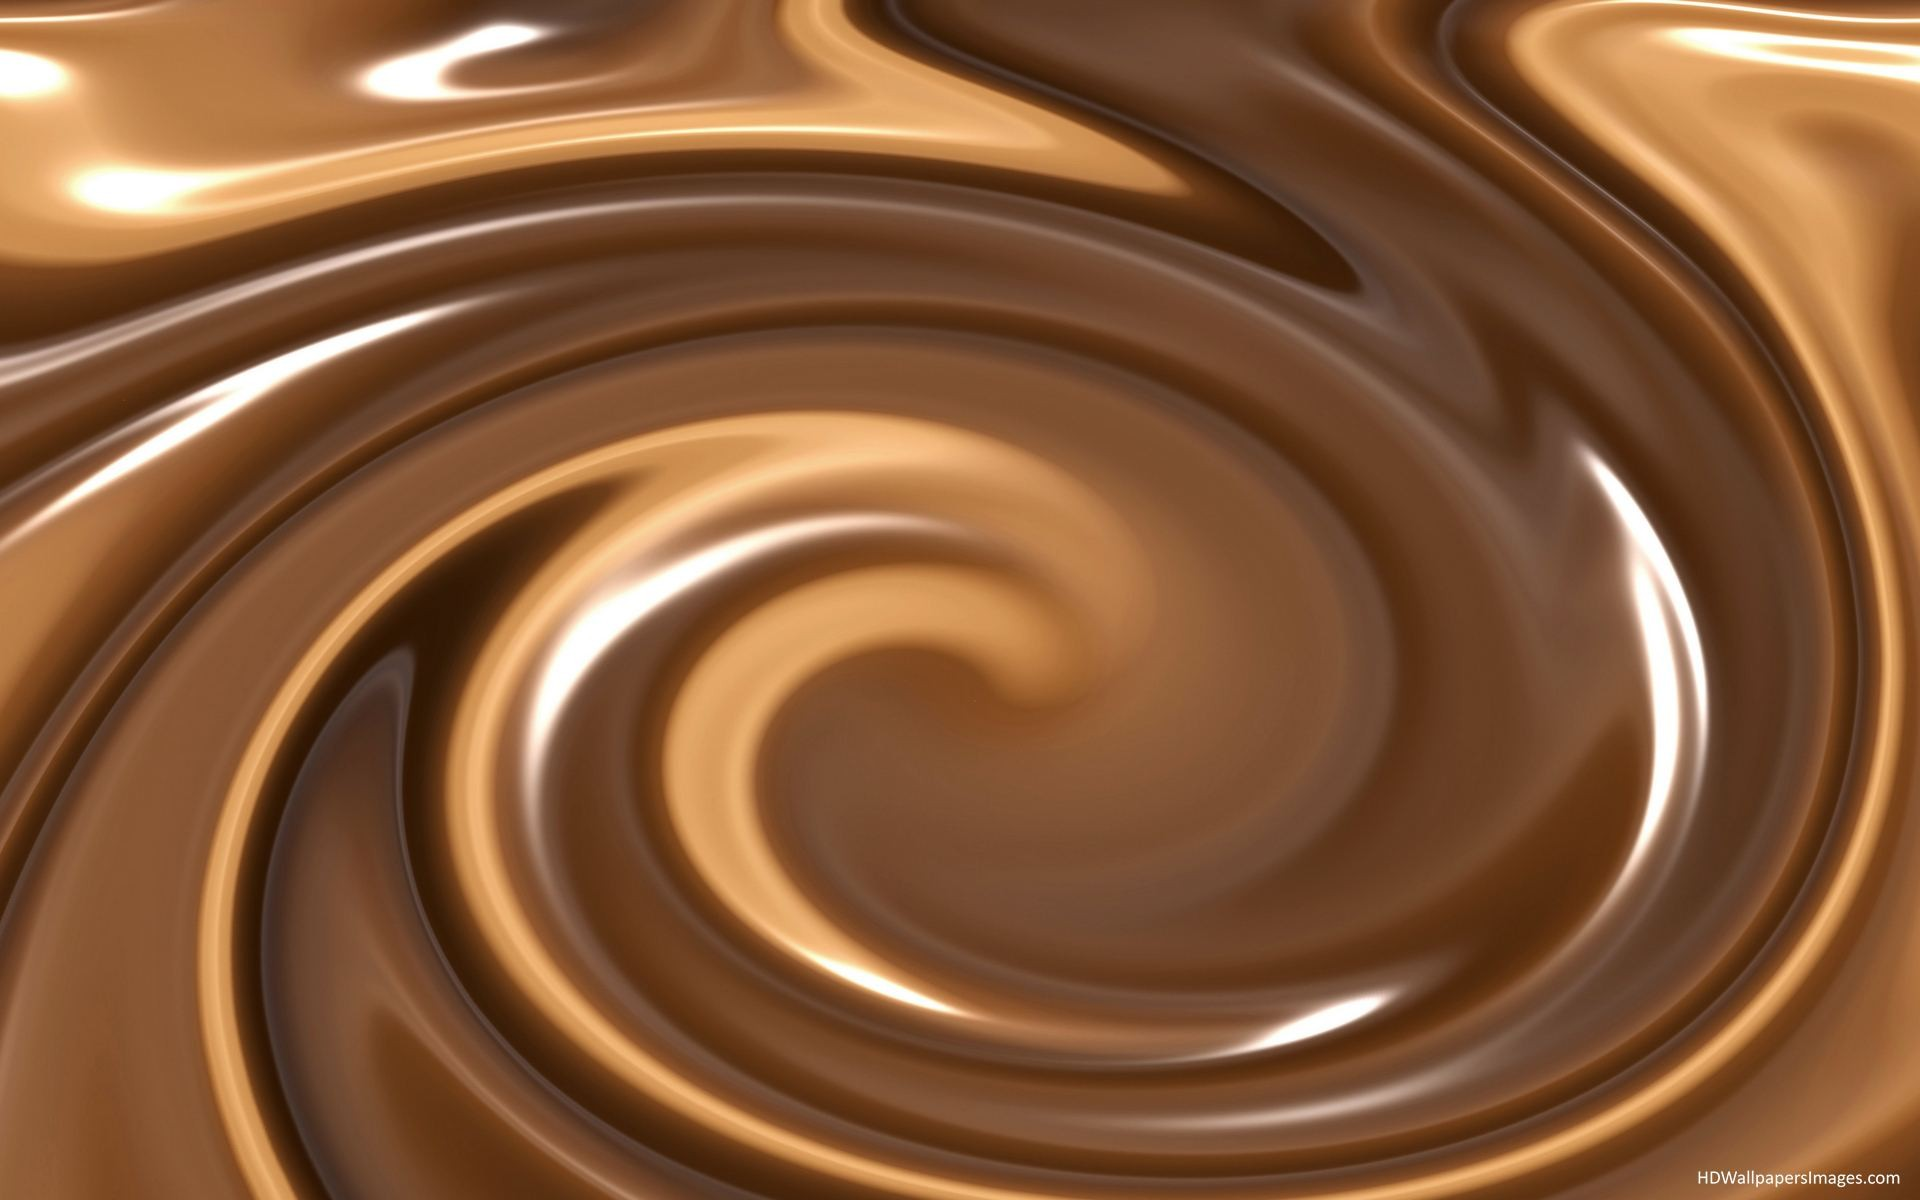 Chocolate Background Download Free Cool High Resolution HD Wallpapers Download Free Images Wallpaper [1000image.com]